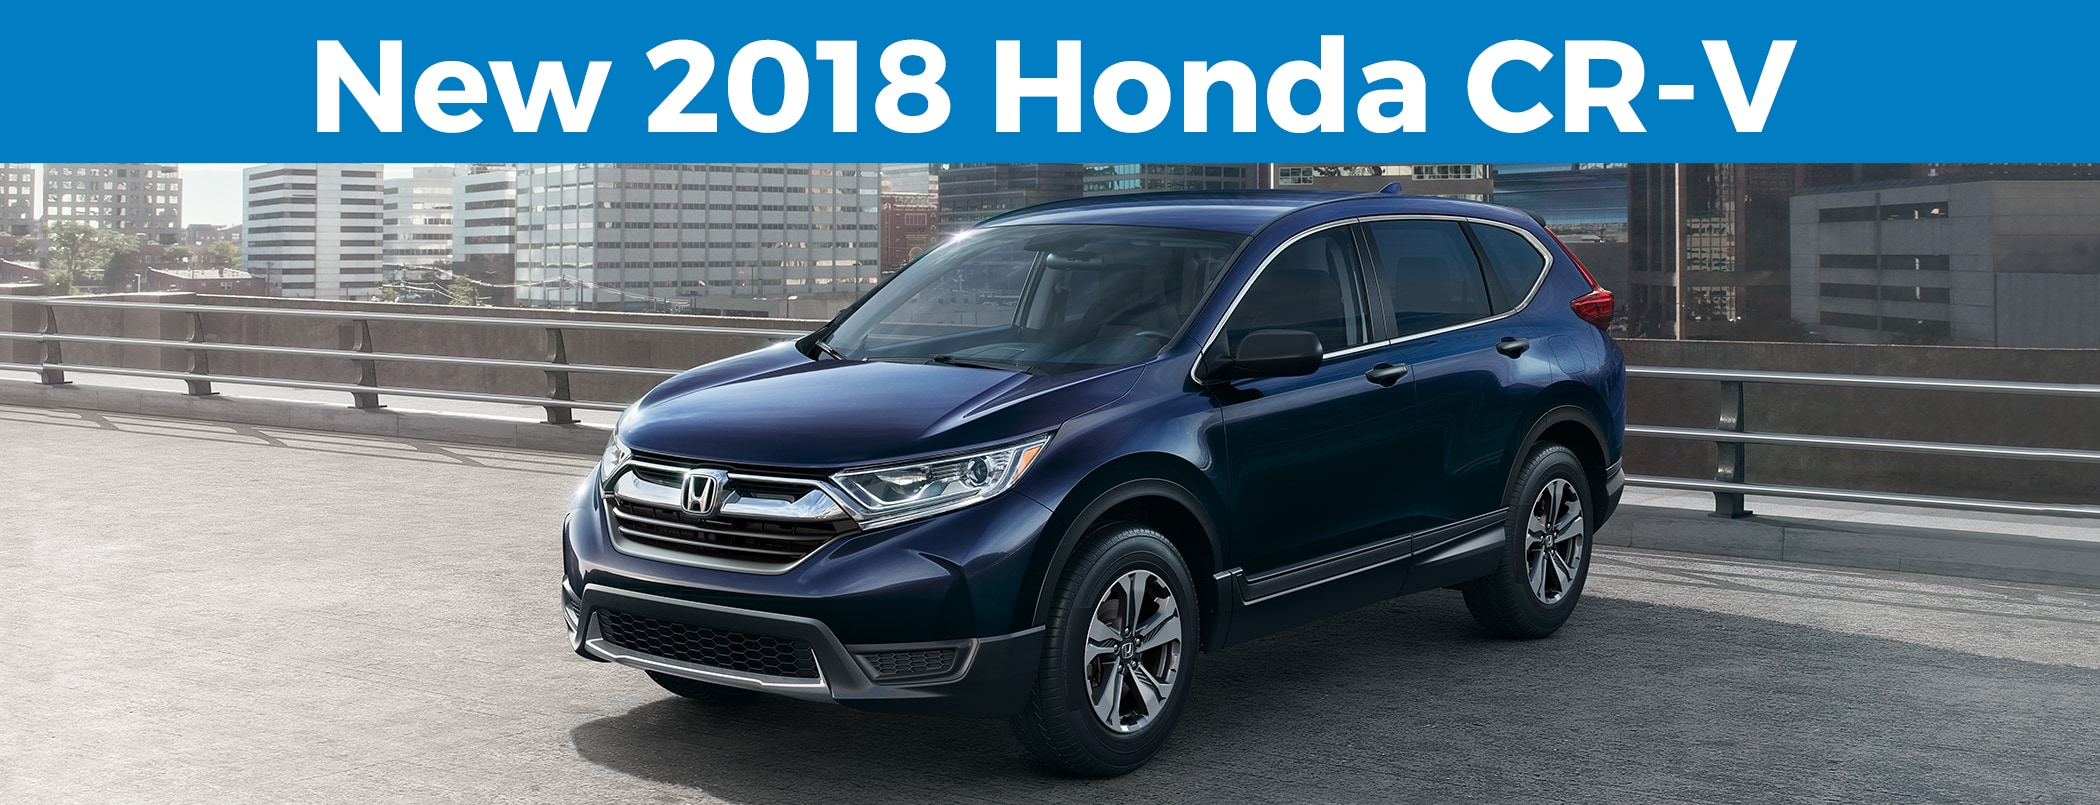 2018 Honda CR-V Review Sandy